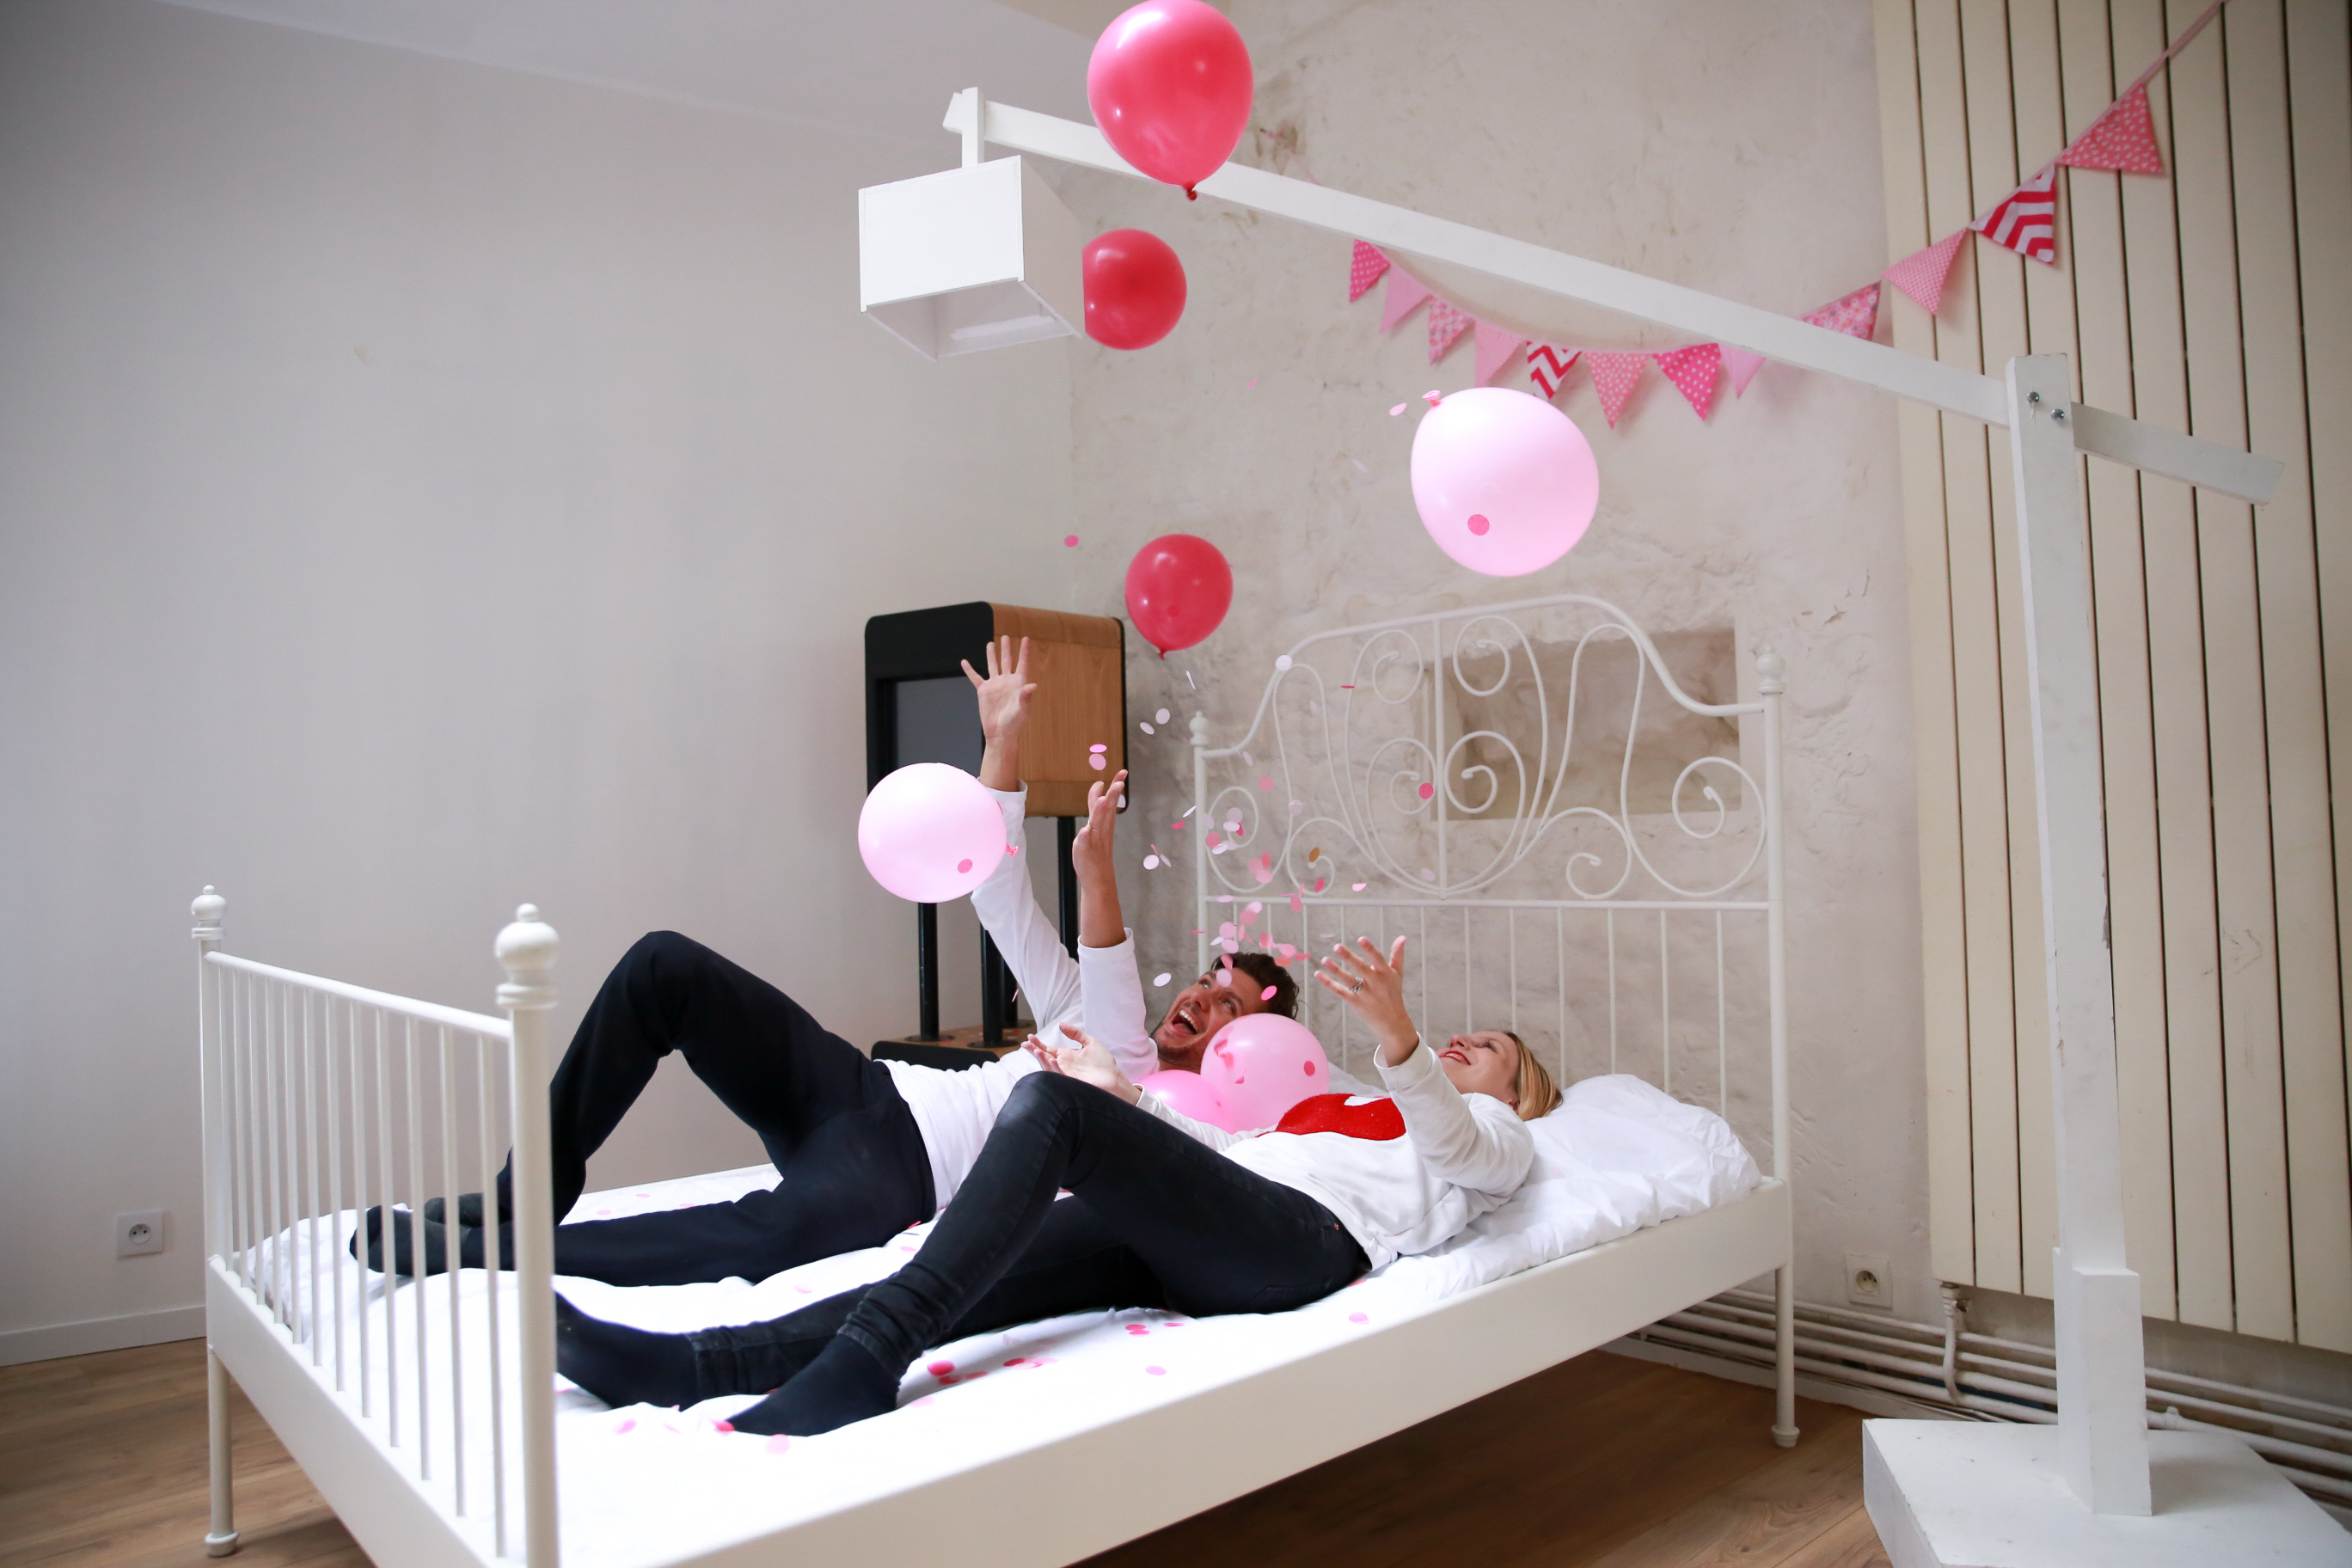 Bed photobooth, une animation de soirée originale par Mister Like That